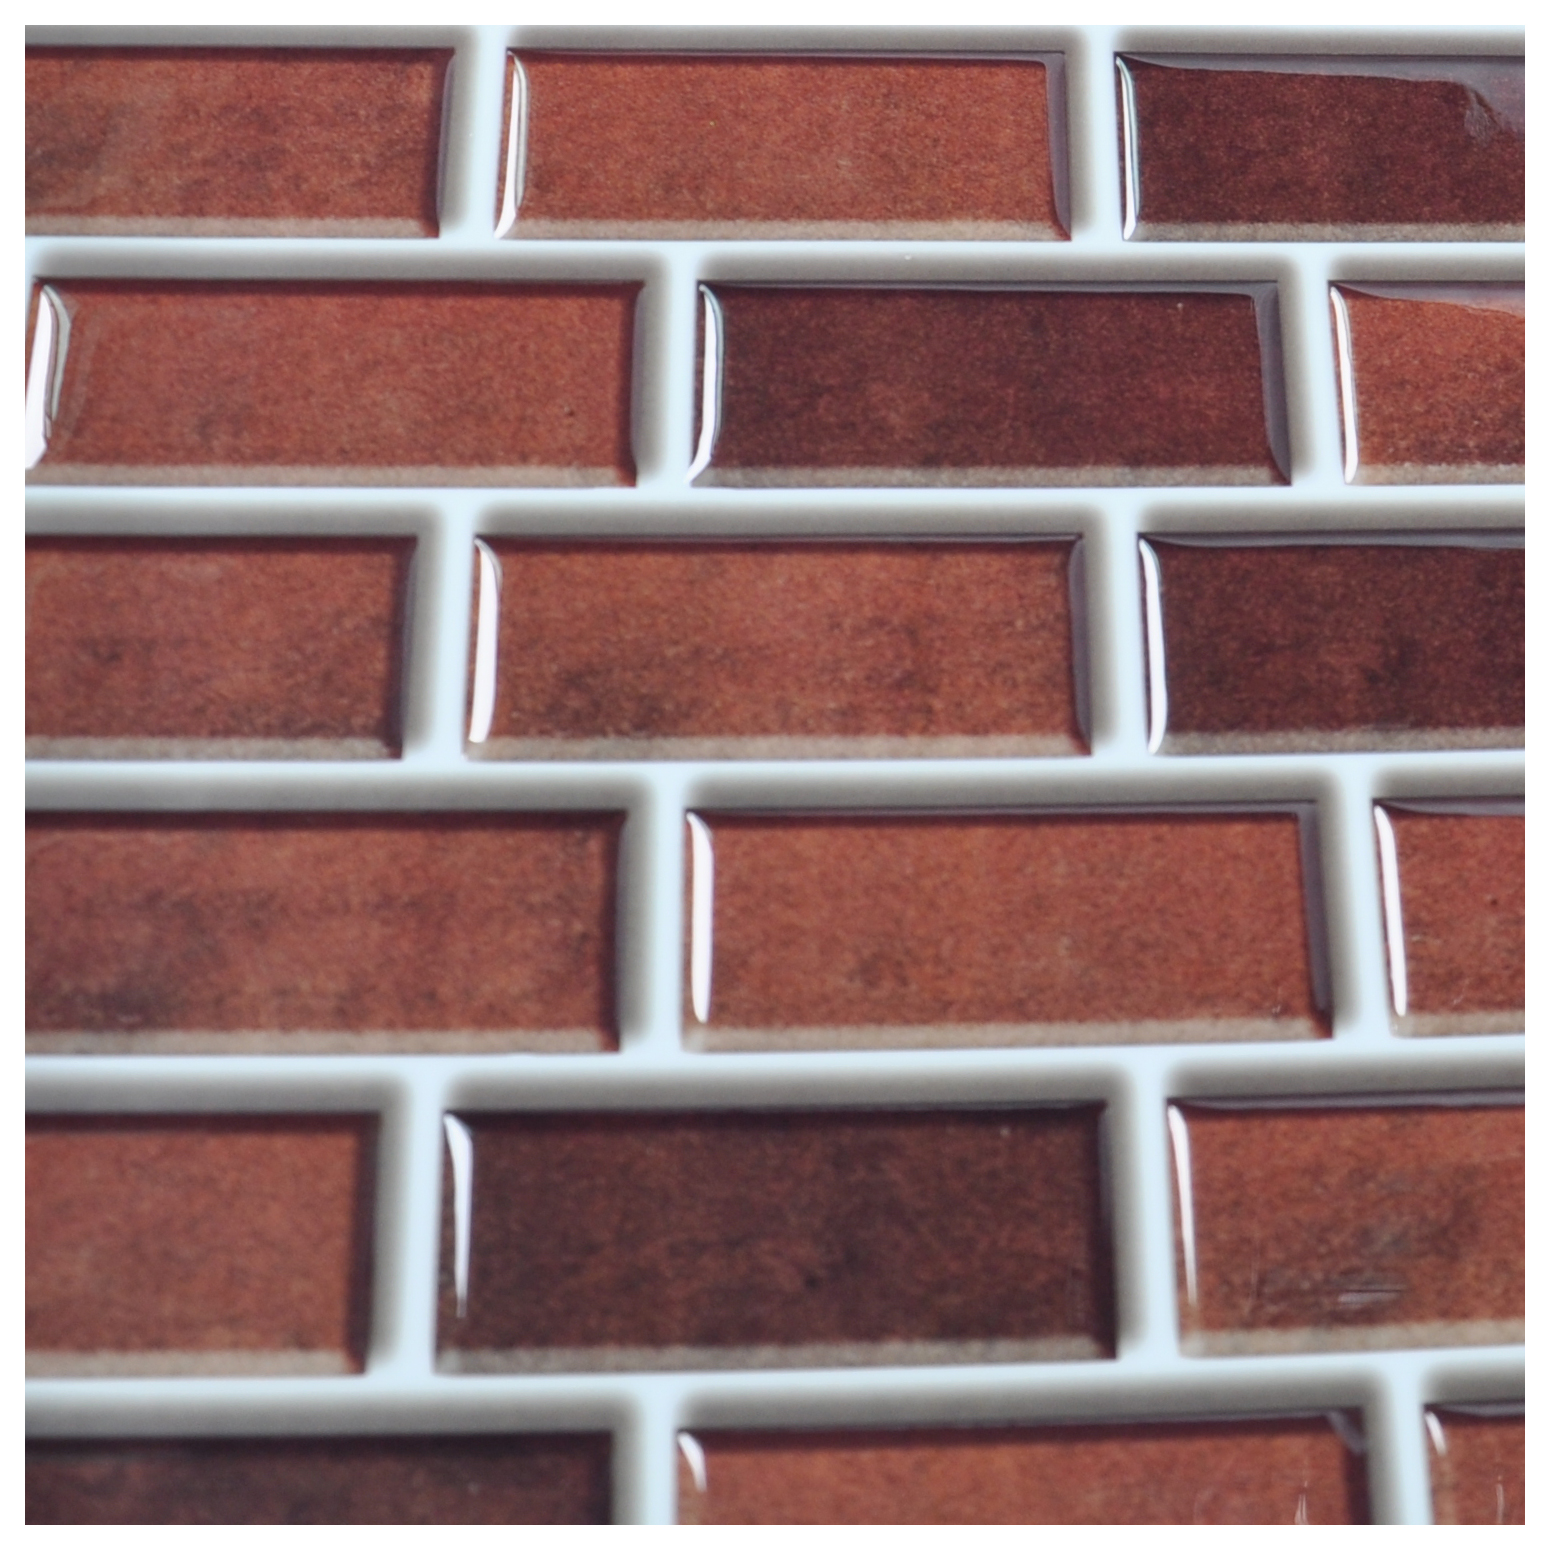 Peel and stick brick backsplash tile for kitchen 12x12 set of 6 dailygadgetfo Gallery